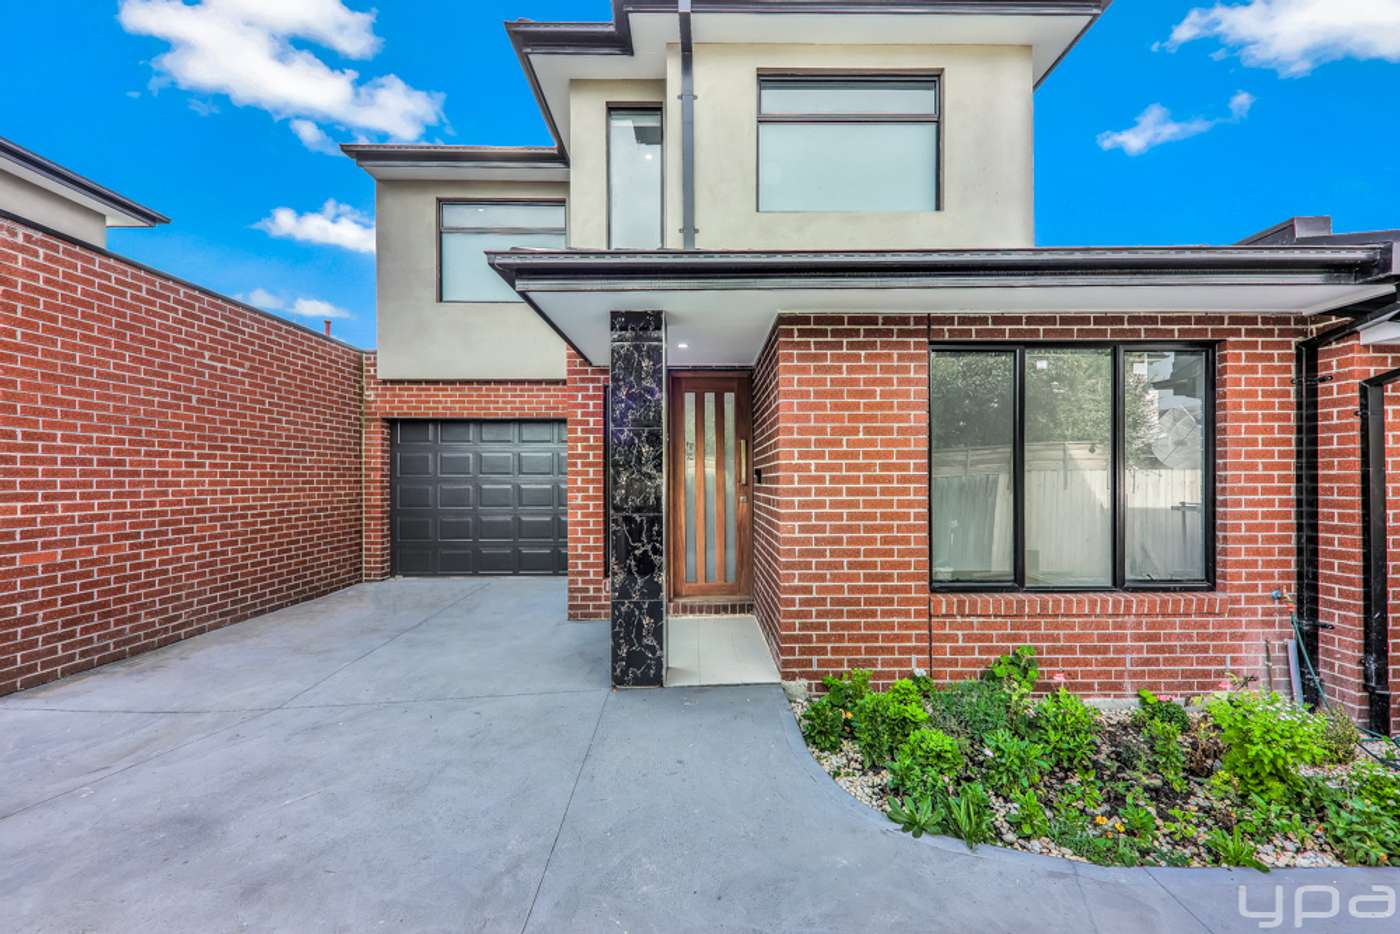 Main view of Homely townhouse listing, 2/4 Bailey Court, Campbellfield VIC 3061